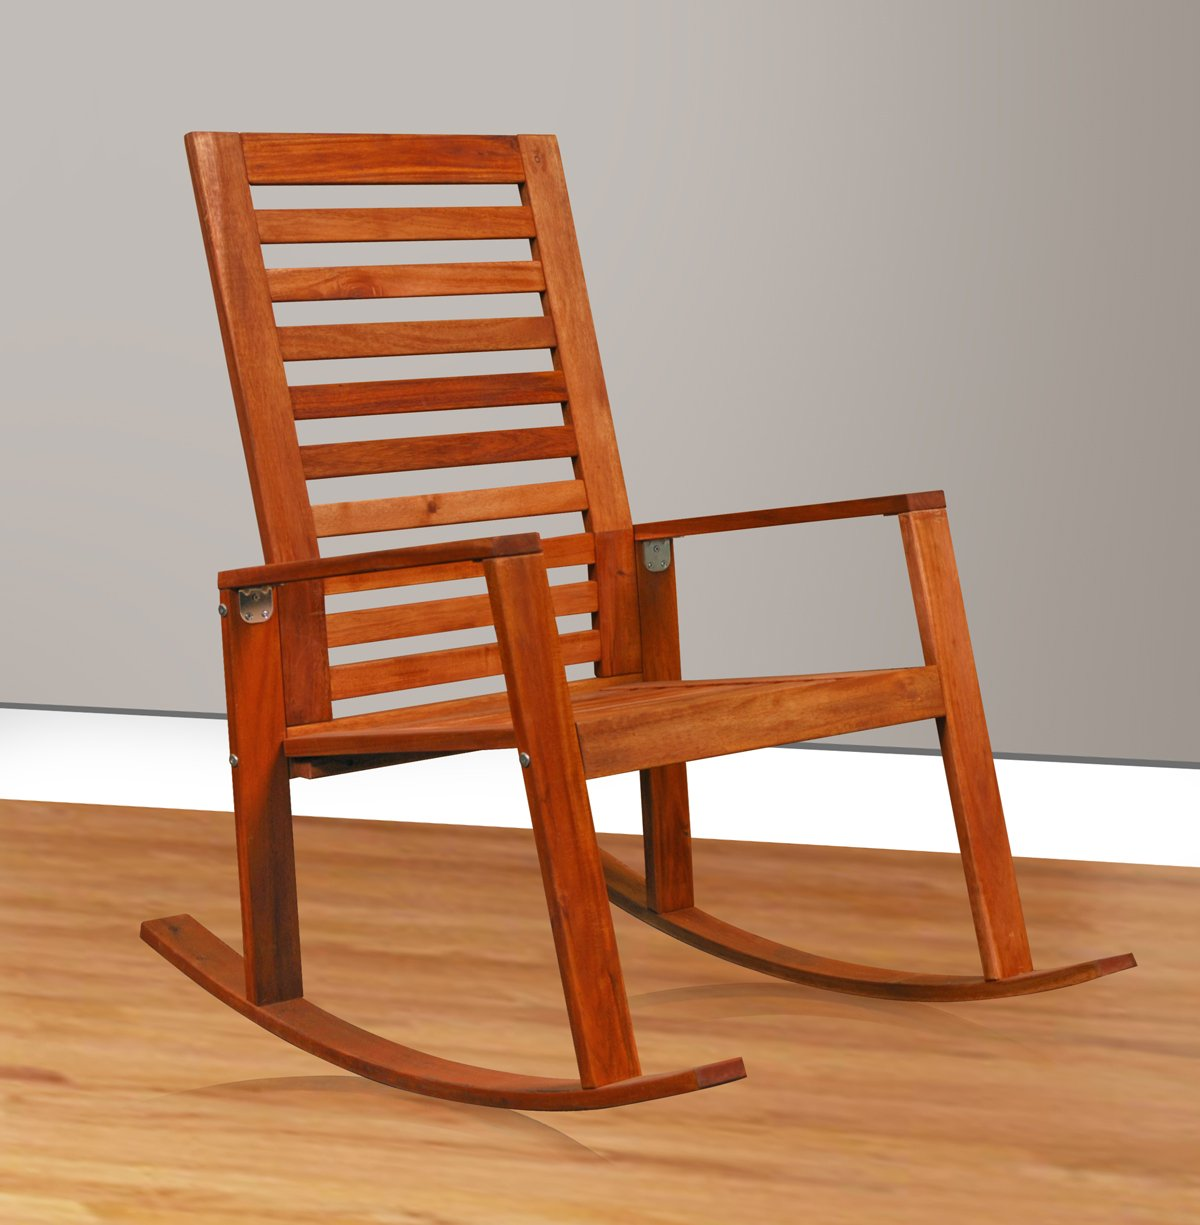 Wooden Garden Chair ~ Outdoor wood furniture at the galleria